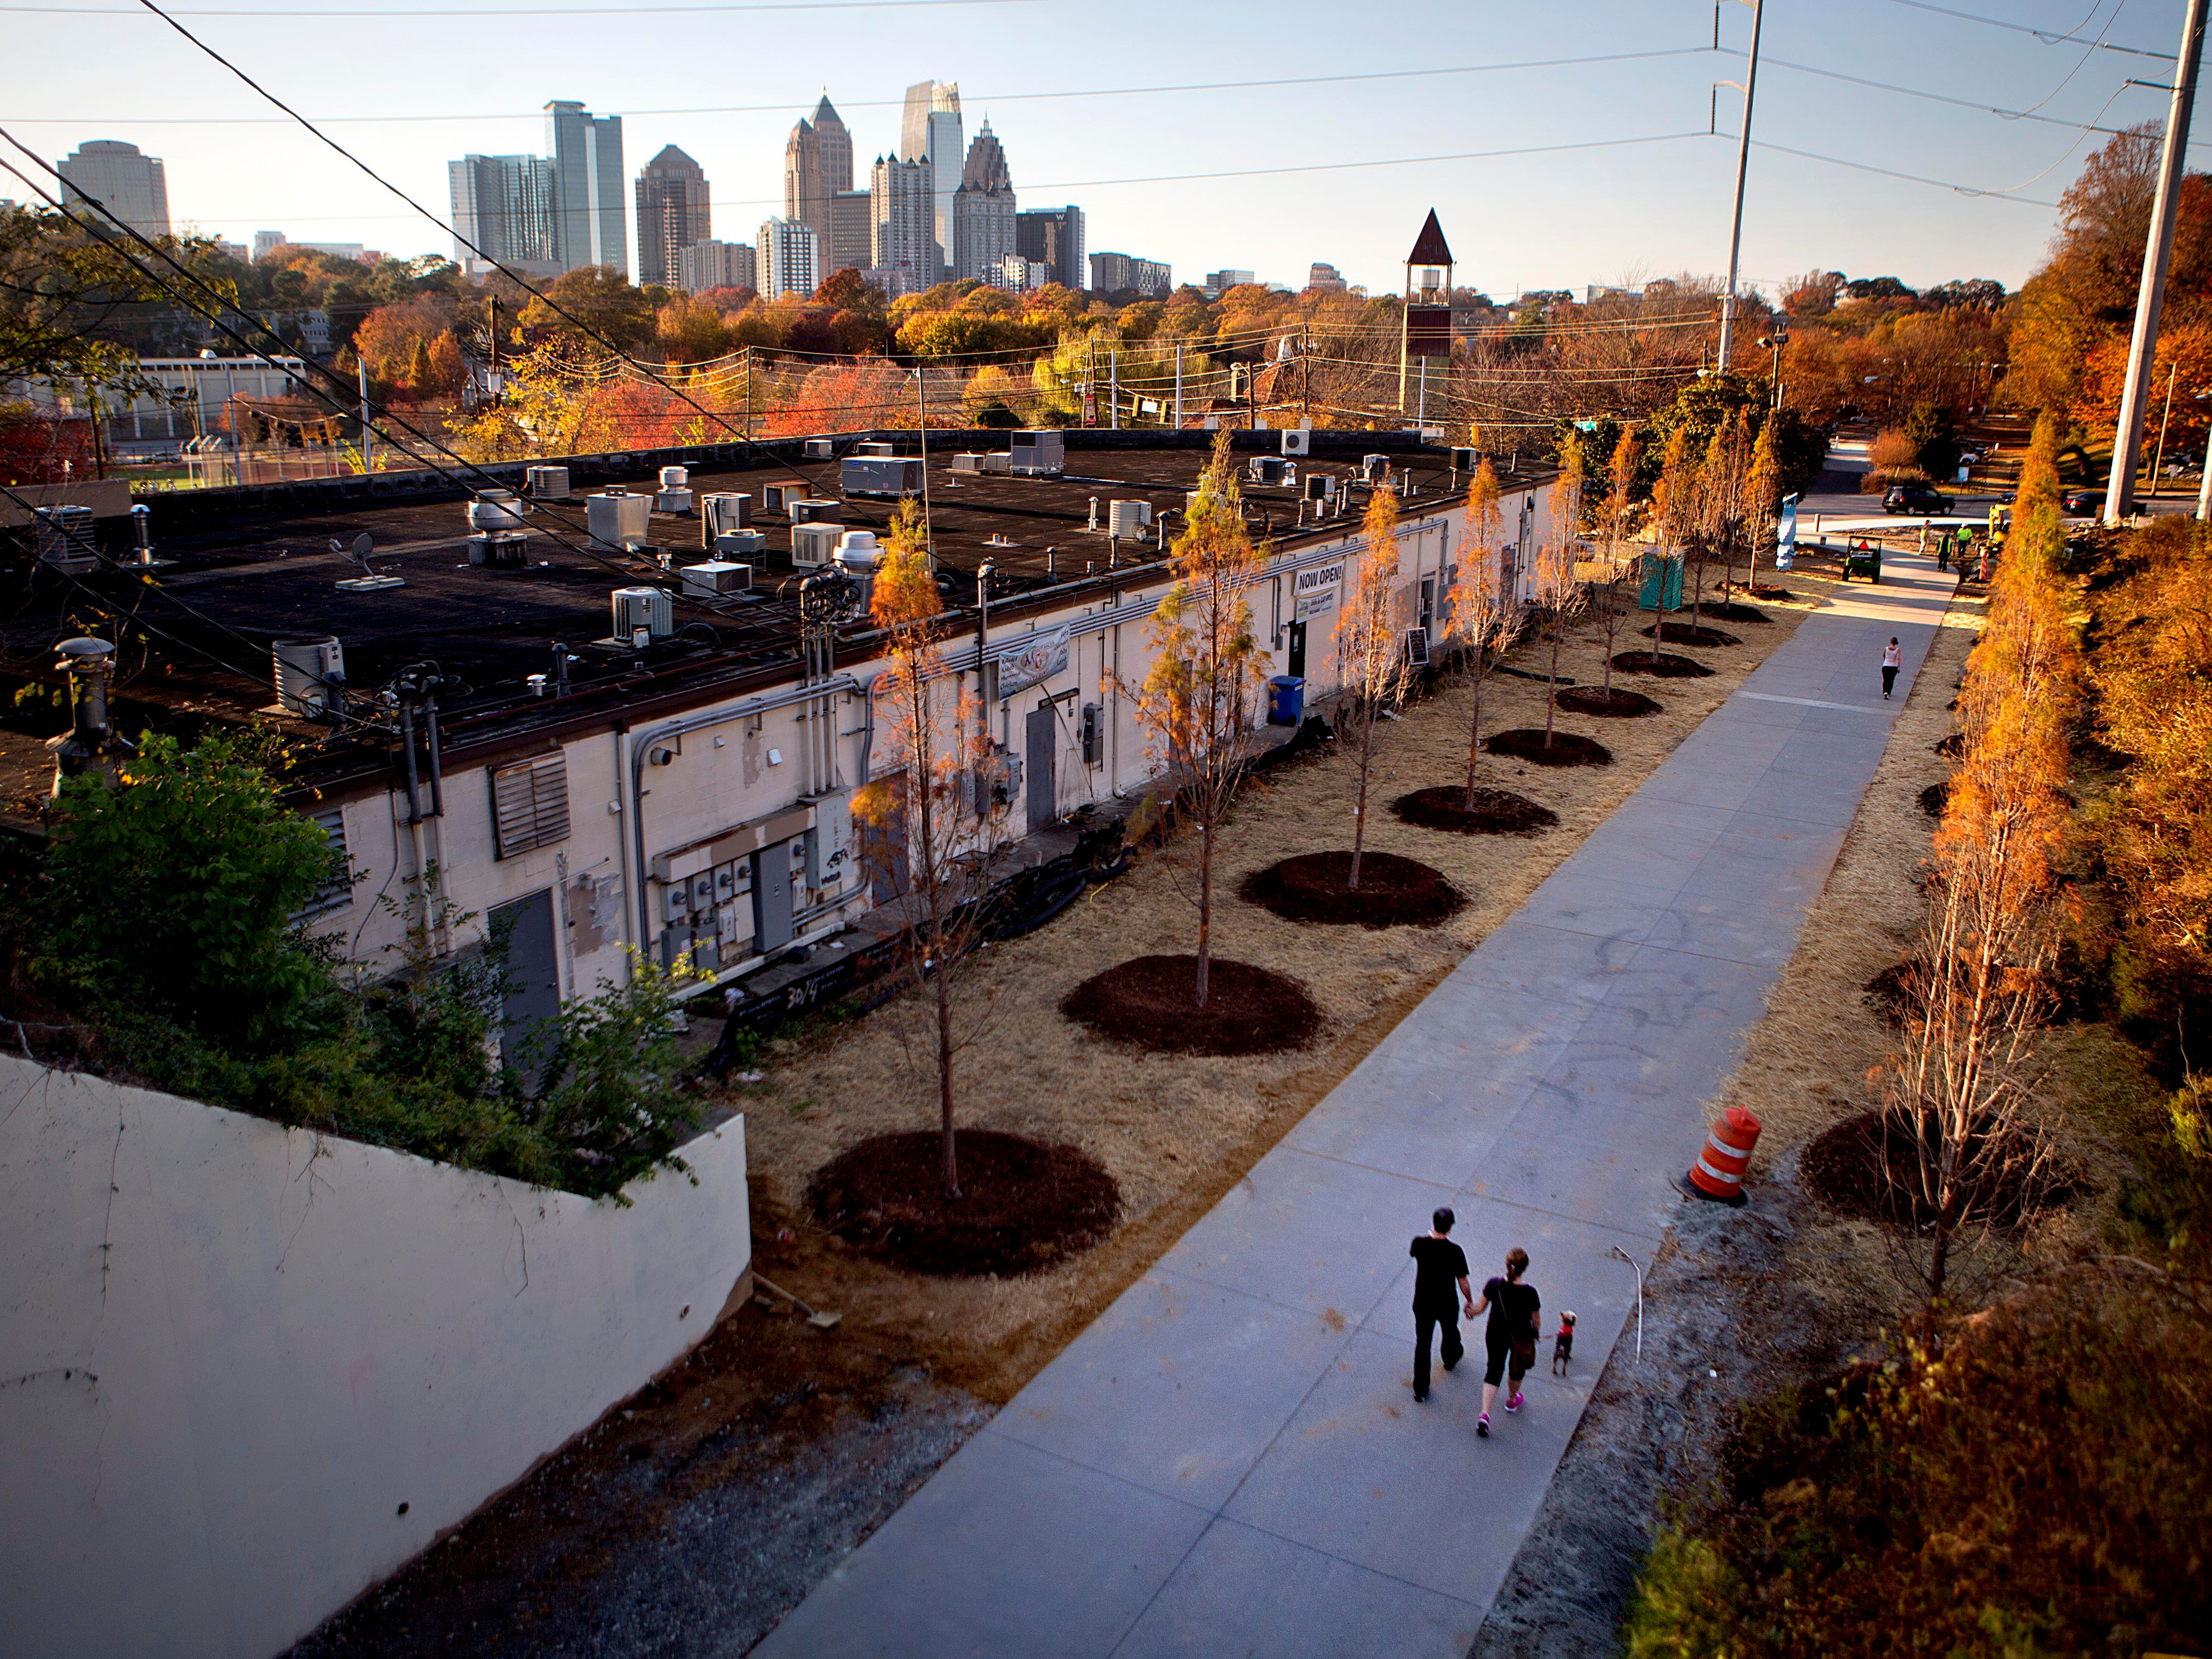 The Atlanta BeltLine is a 2.25-mile-long paved trail east of downtown that attracts a steady stream of joggers, dog-walkers and cyclists. Atlanta is one of Travelzoo's top picks for travel in January.